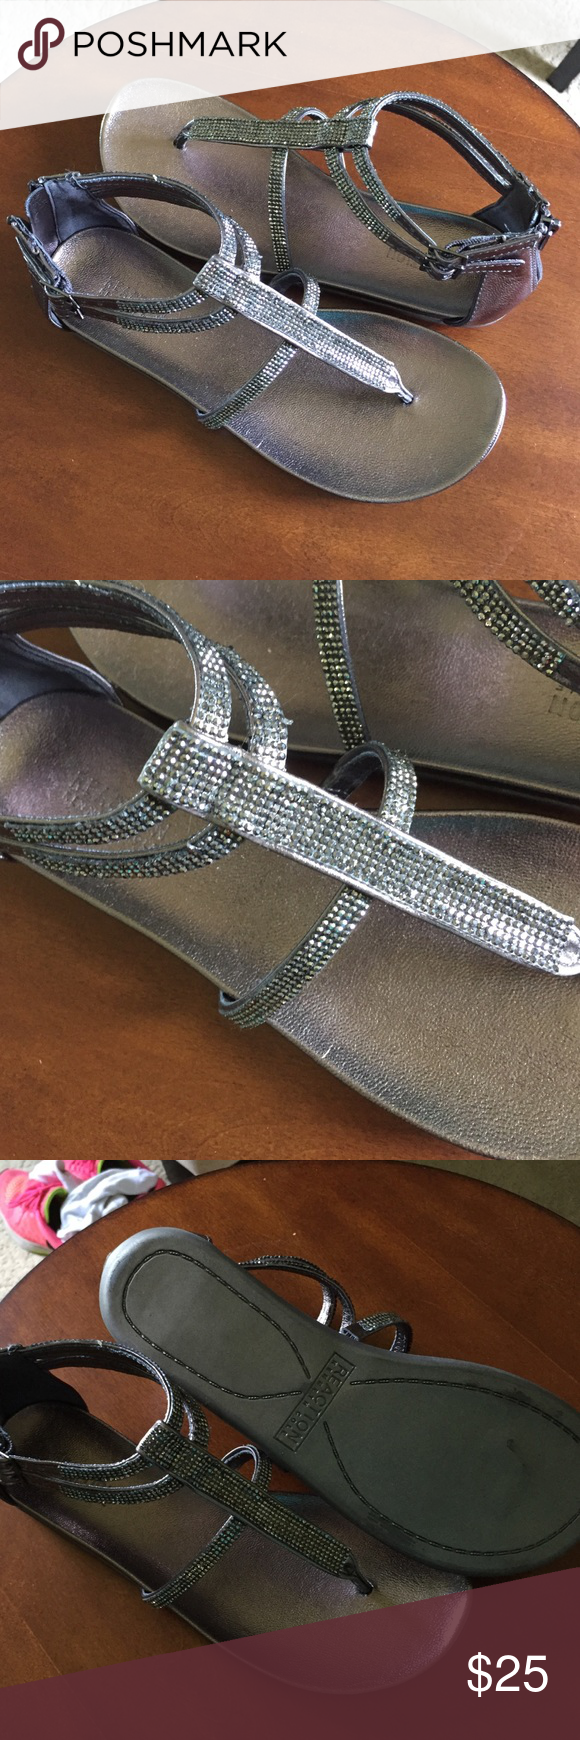 Kenneth Cole Sandals Great condition!  Worn a few times. Kenneth Cole Shoes Sandals